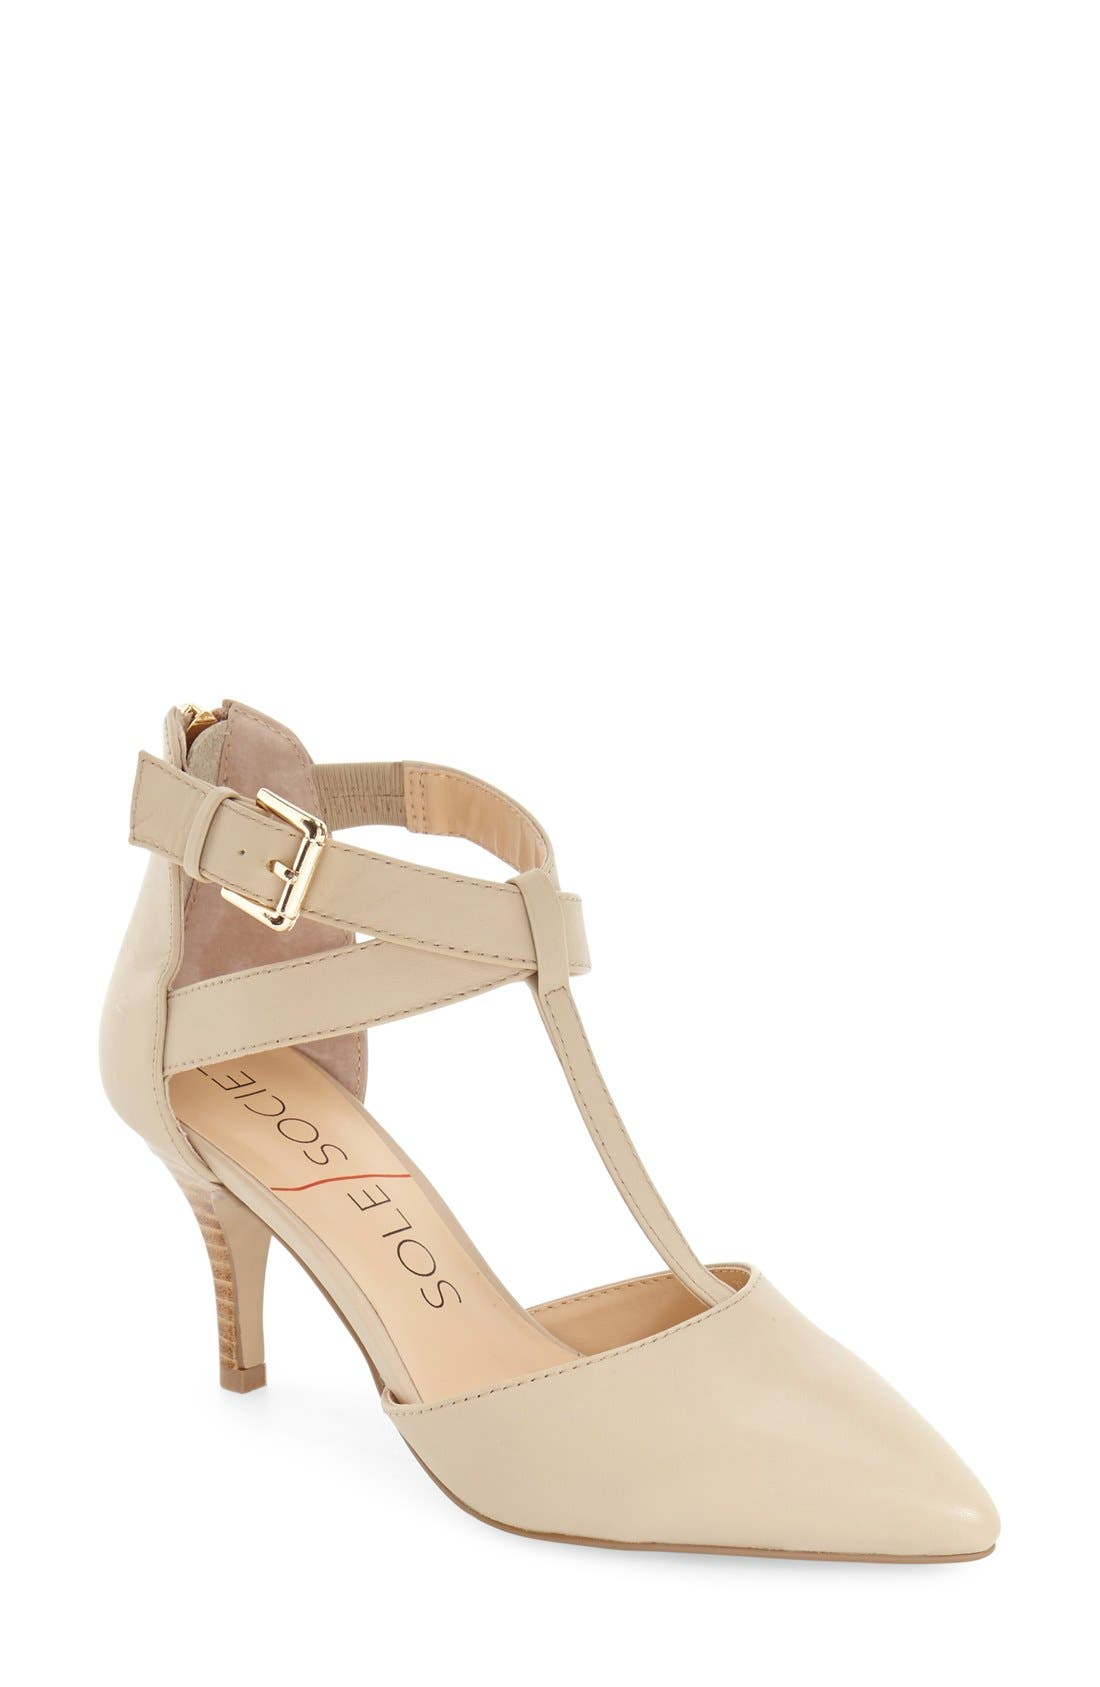 Main Image - Sole Society 'Avalon' T-Strap Pump (Women)